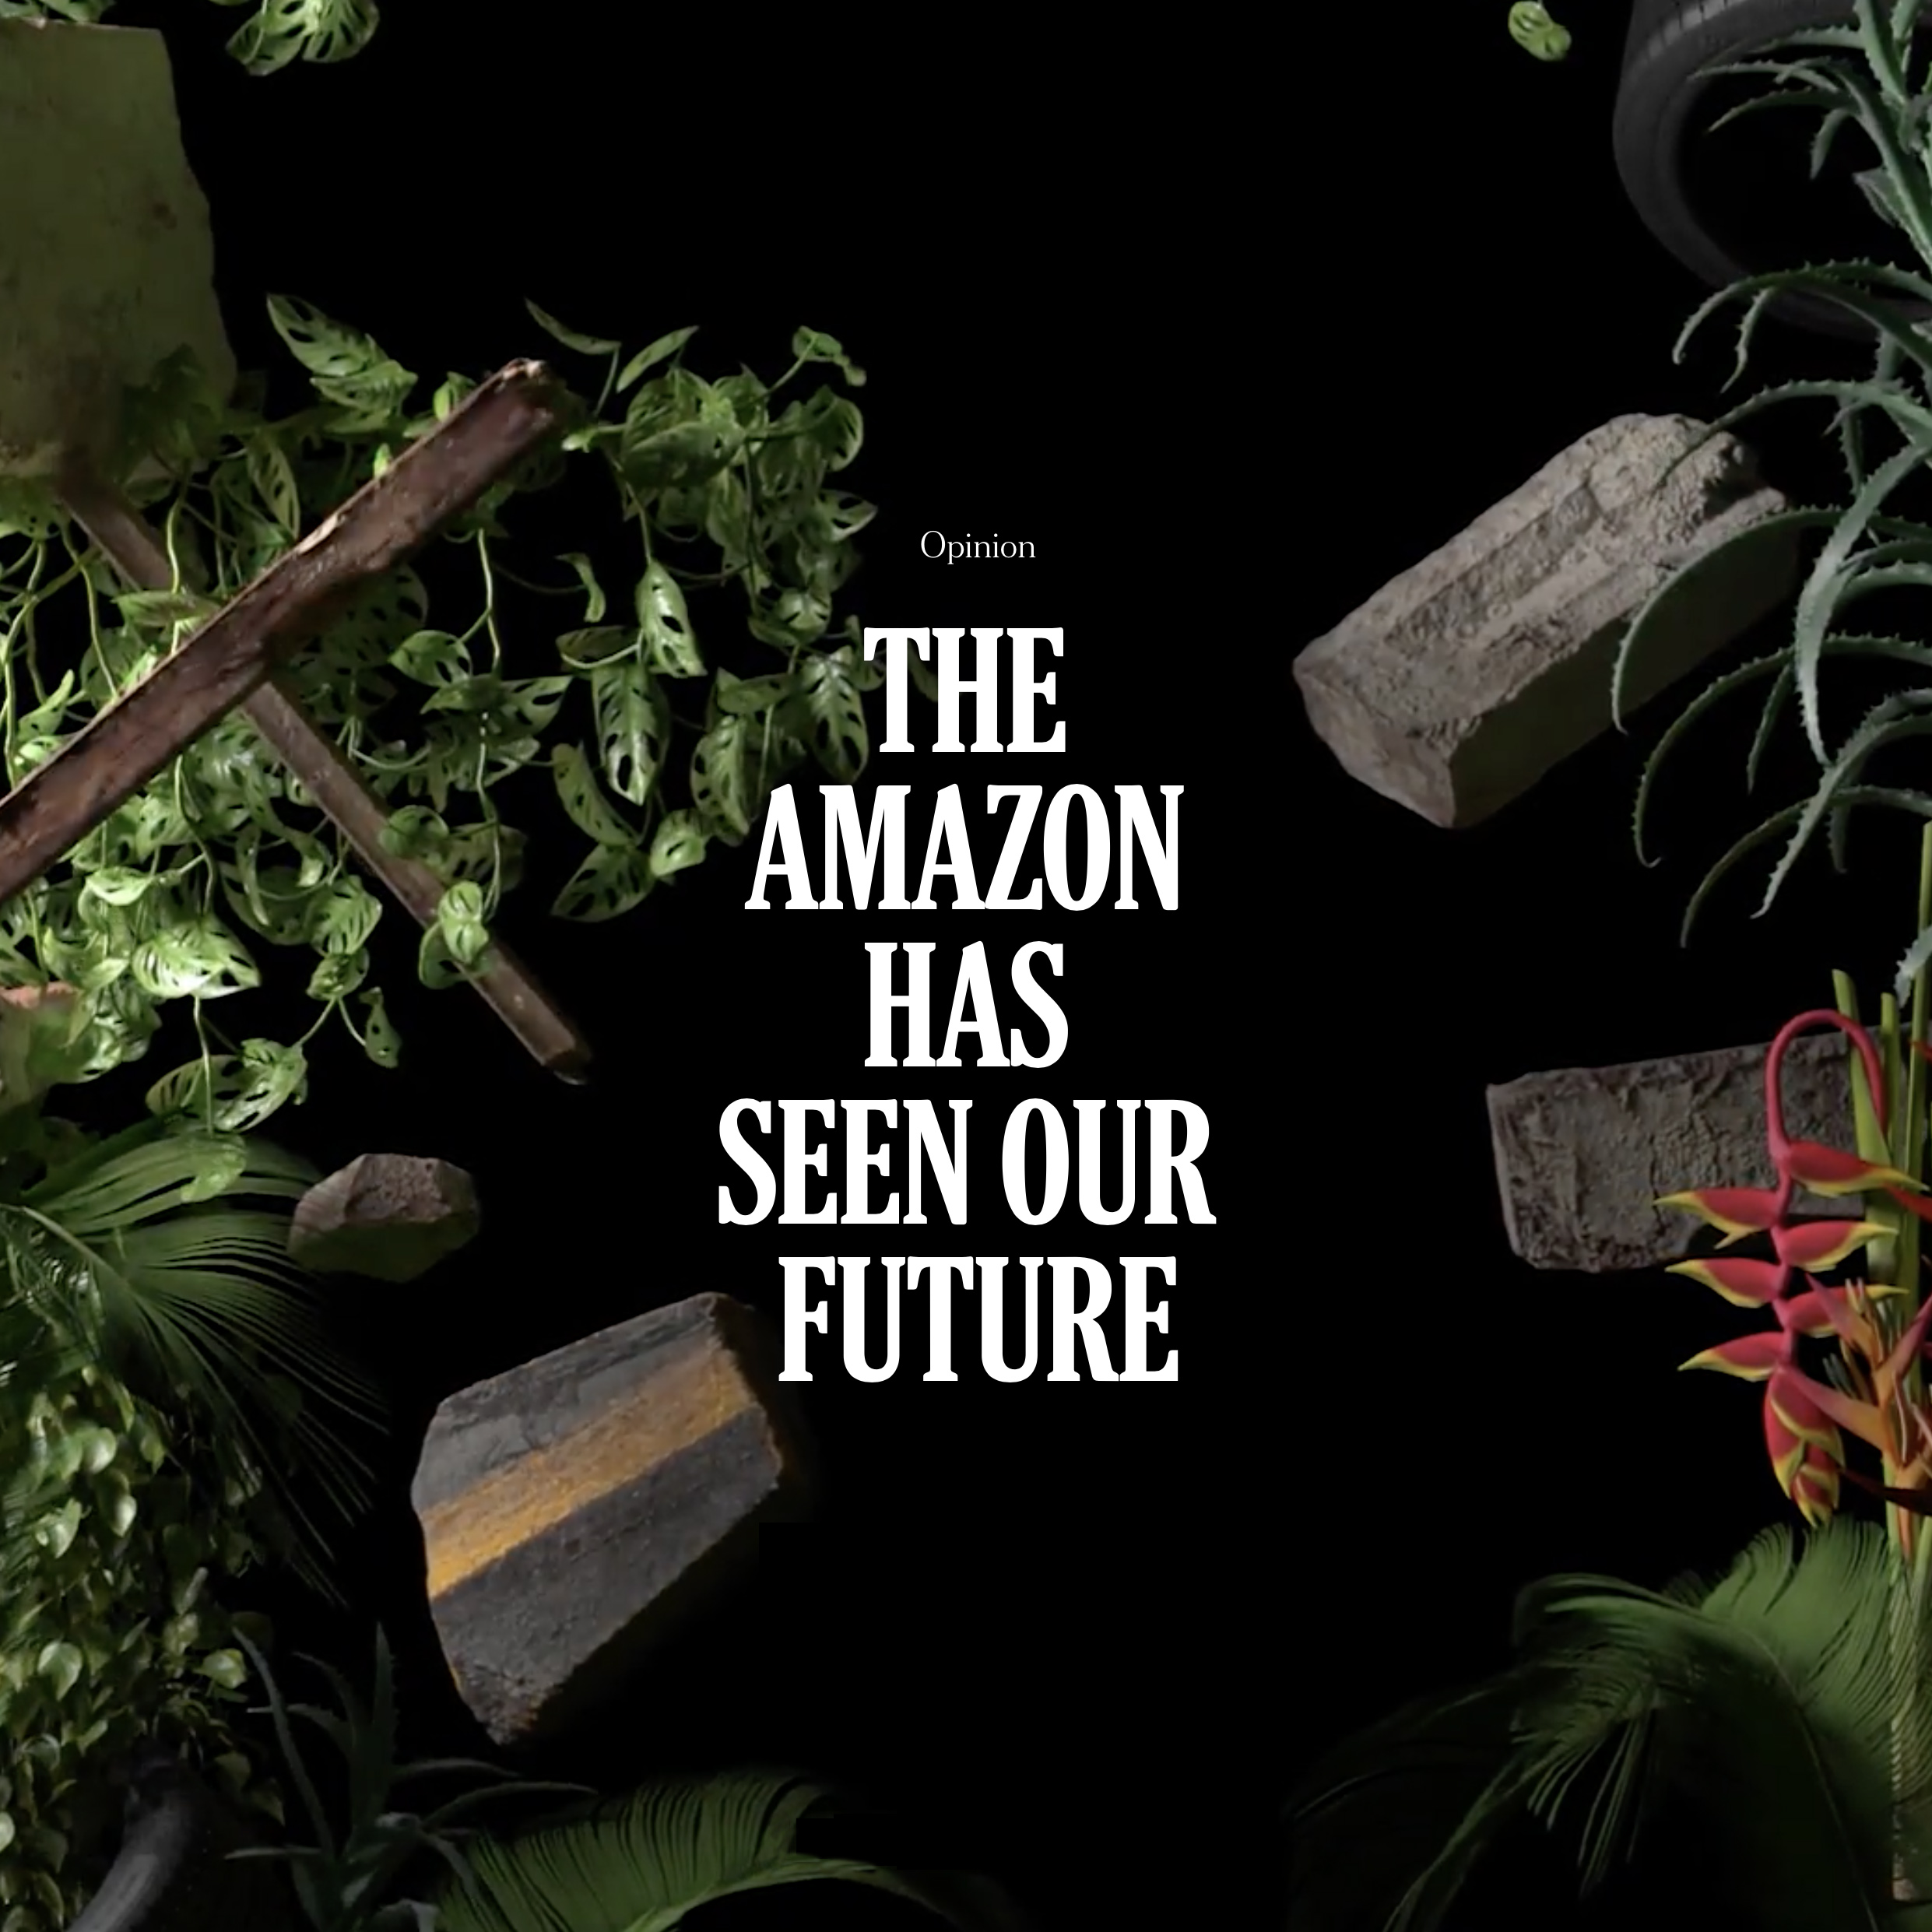 NYTimes - The Amazon Has Seen Our Future